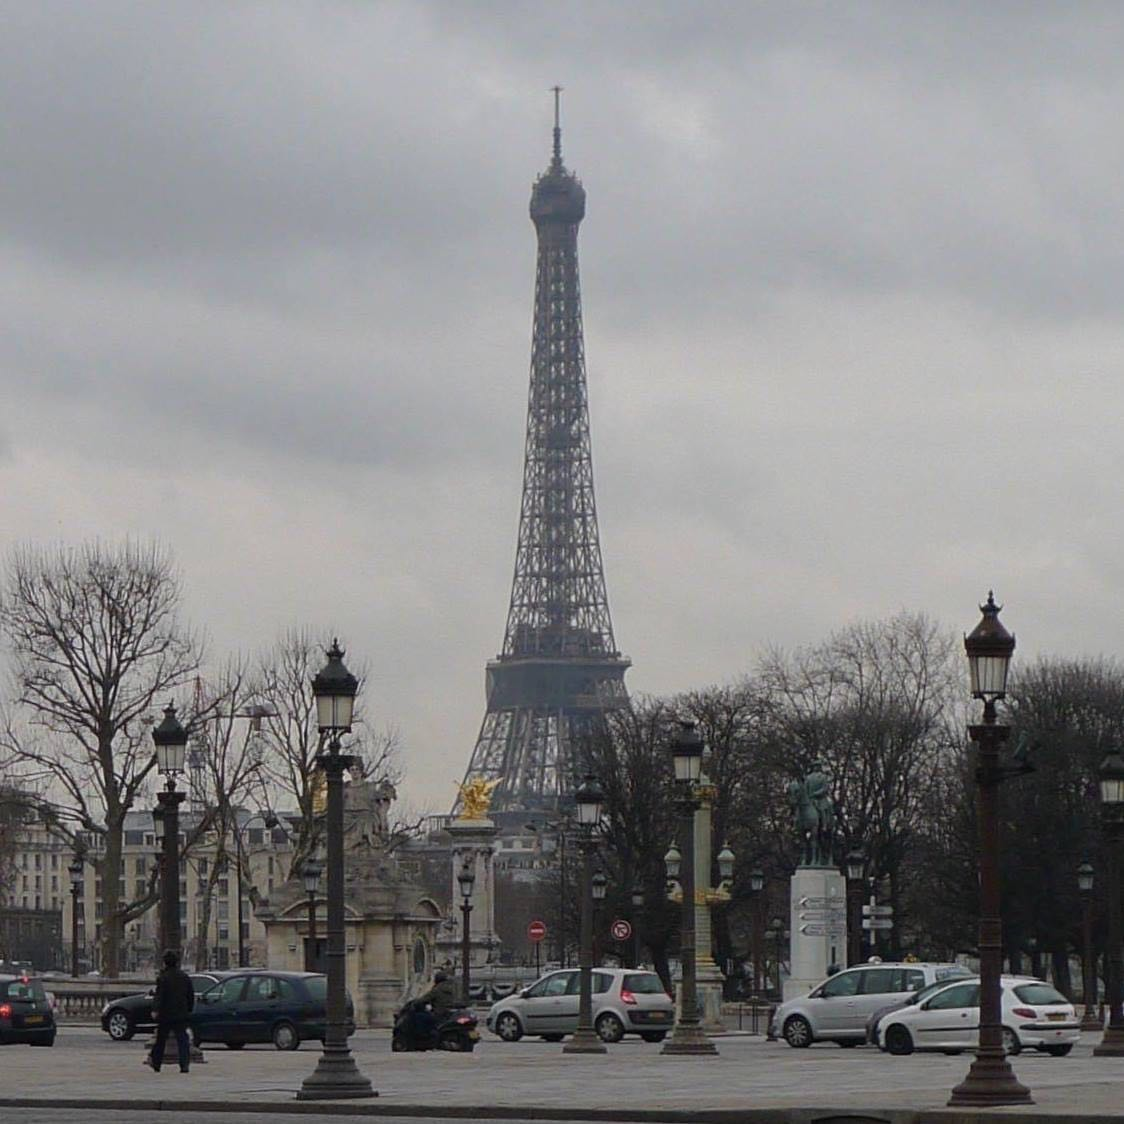 THE EIFFEL TOWER, JANUARY 2010